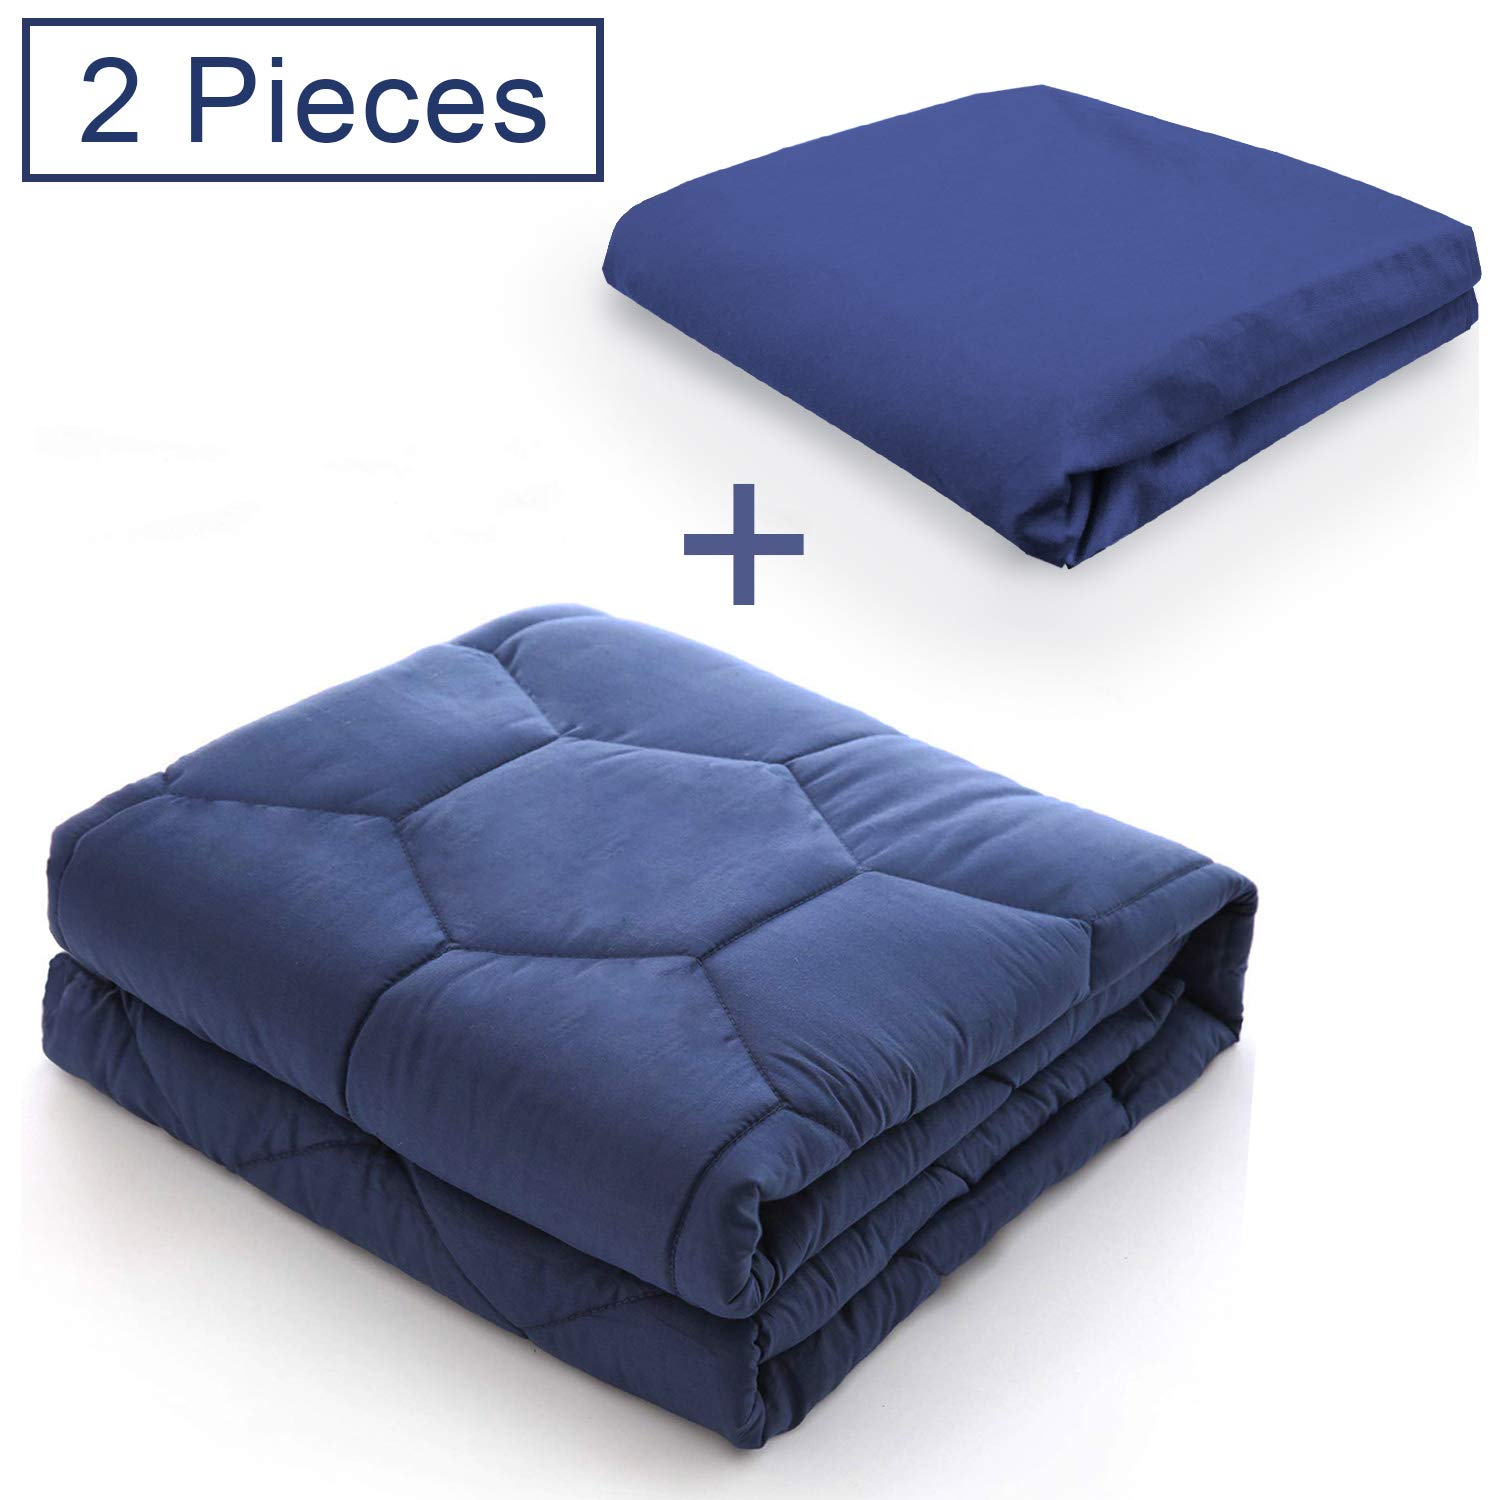 YEMYHOM 100% Breathable Weighted Blanket with Removable Cotton Duvet Cover for Easy Clean   Heavy Blankets for Adult and Kids   20 lbs 60''x80'' Queen Size   Navy Blue by YEMYHOM